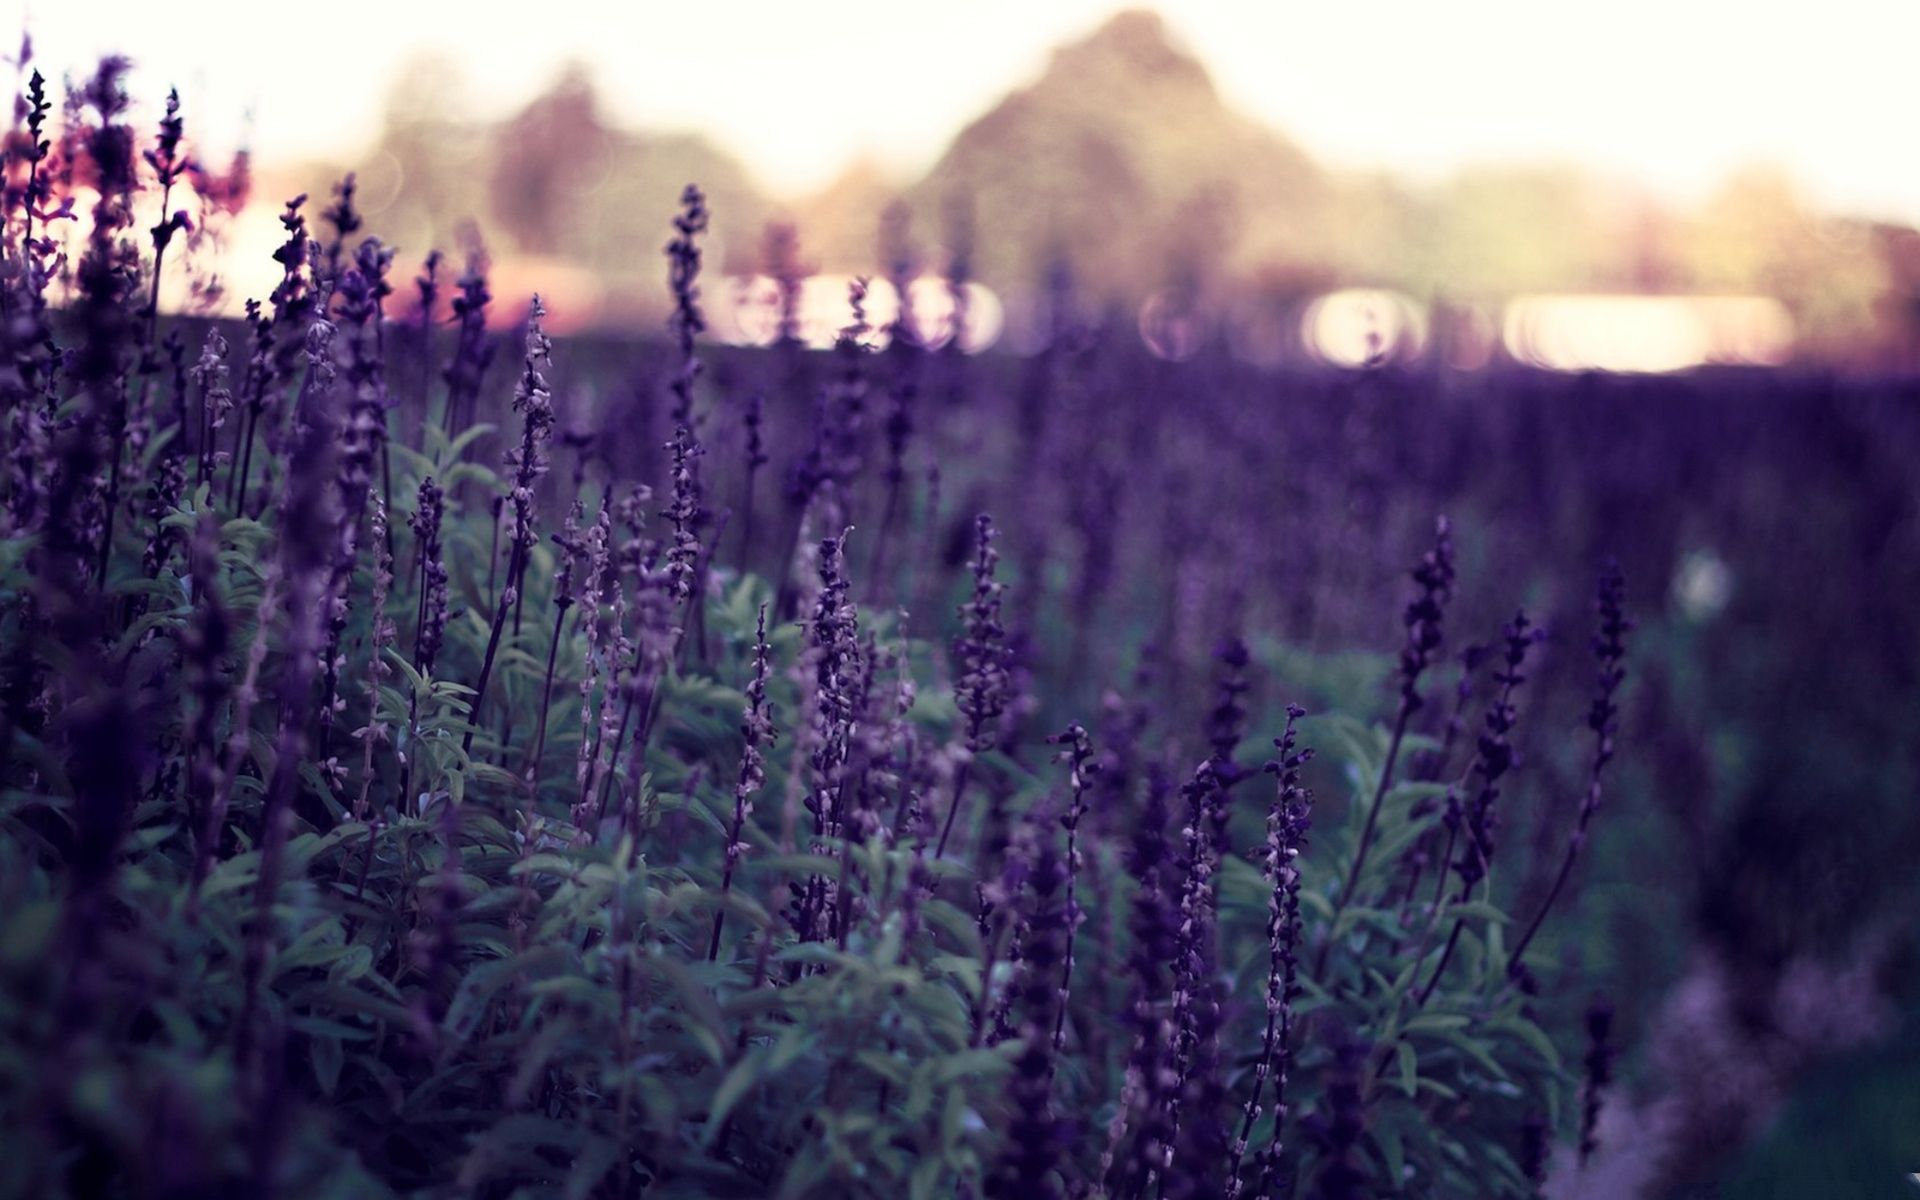 Lavender Flower Tumblr Wallpapers High Definition Beautiful Wallpapers High Resolution Quality 1920x1200 Px Flower Backgrounds Flower Wallpaper Field Wallpaper